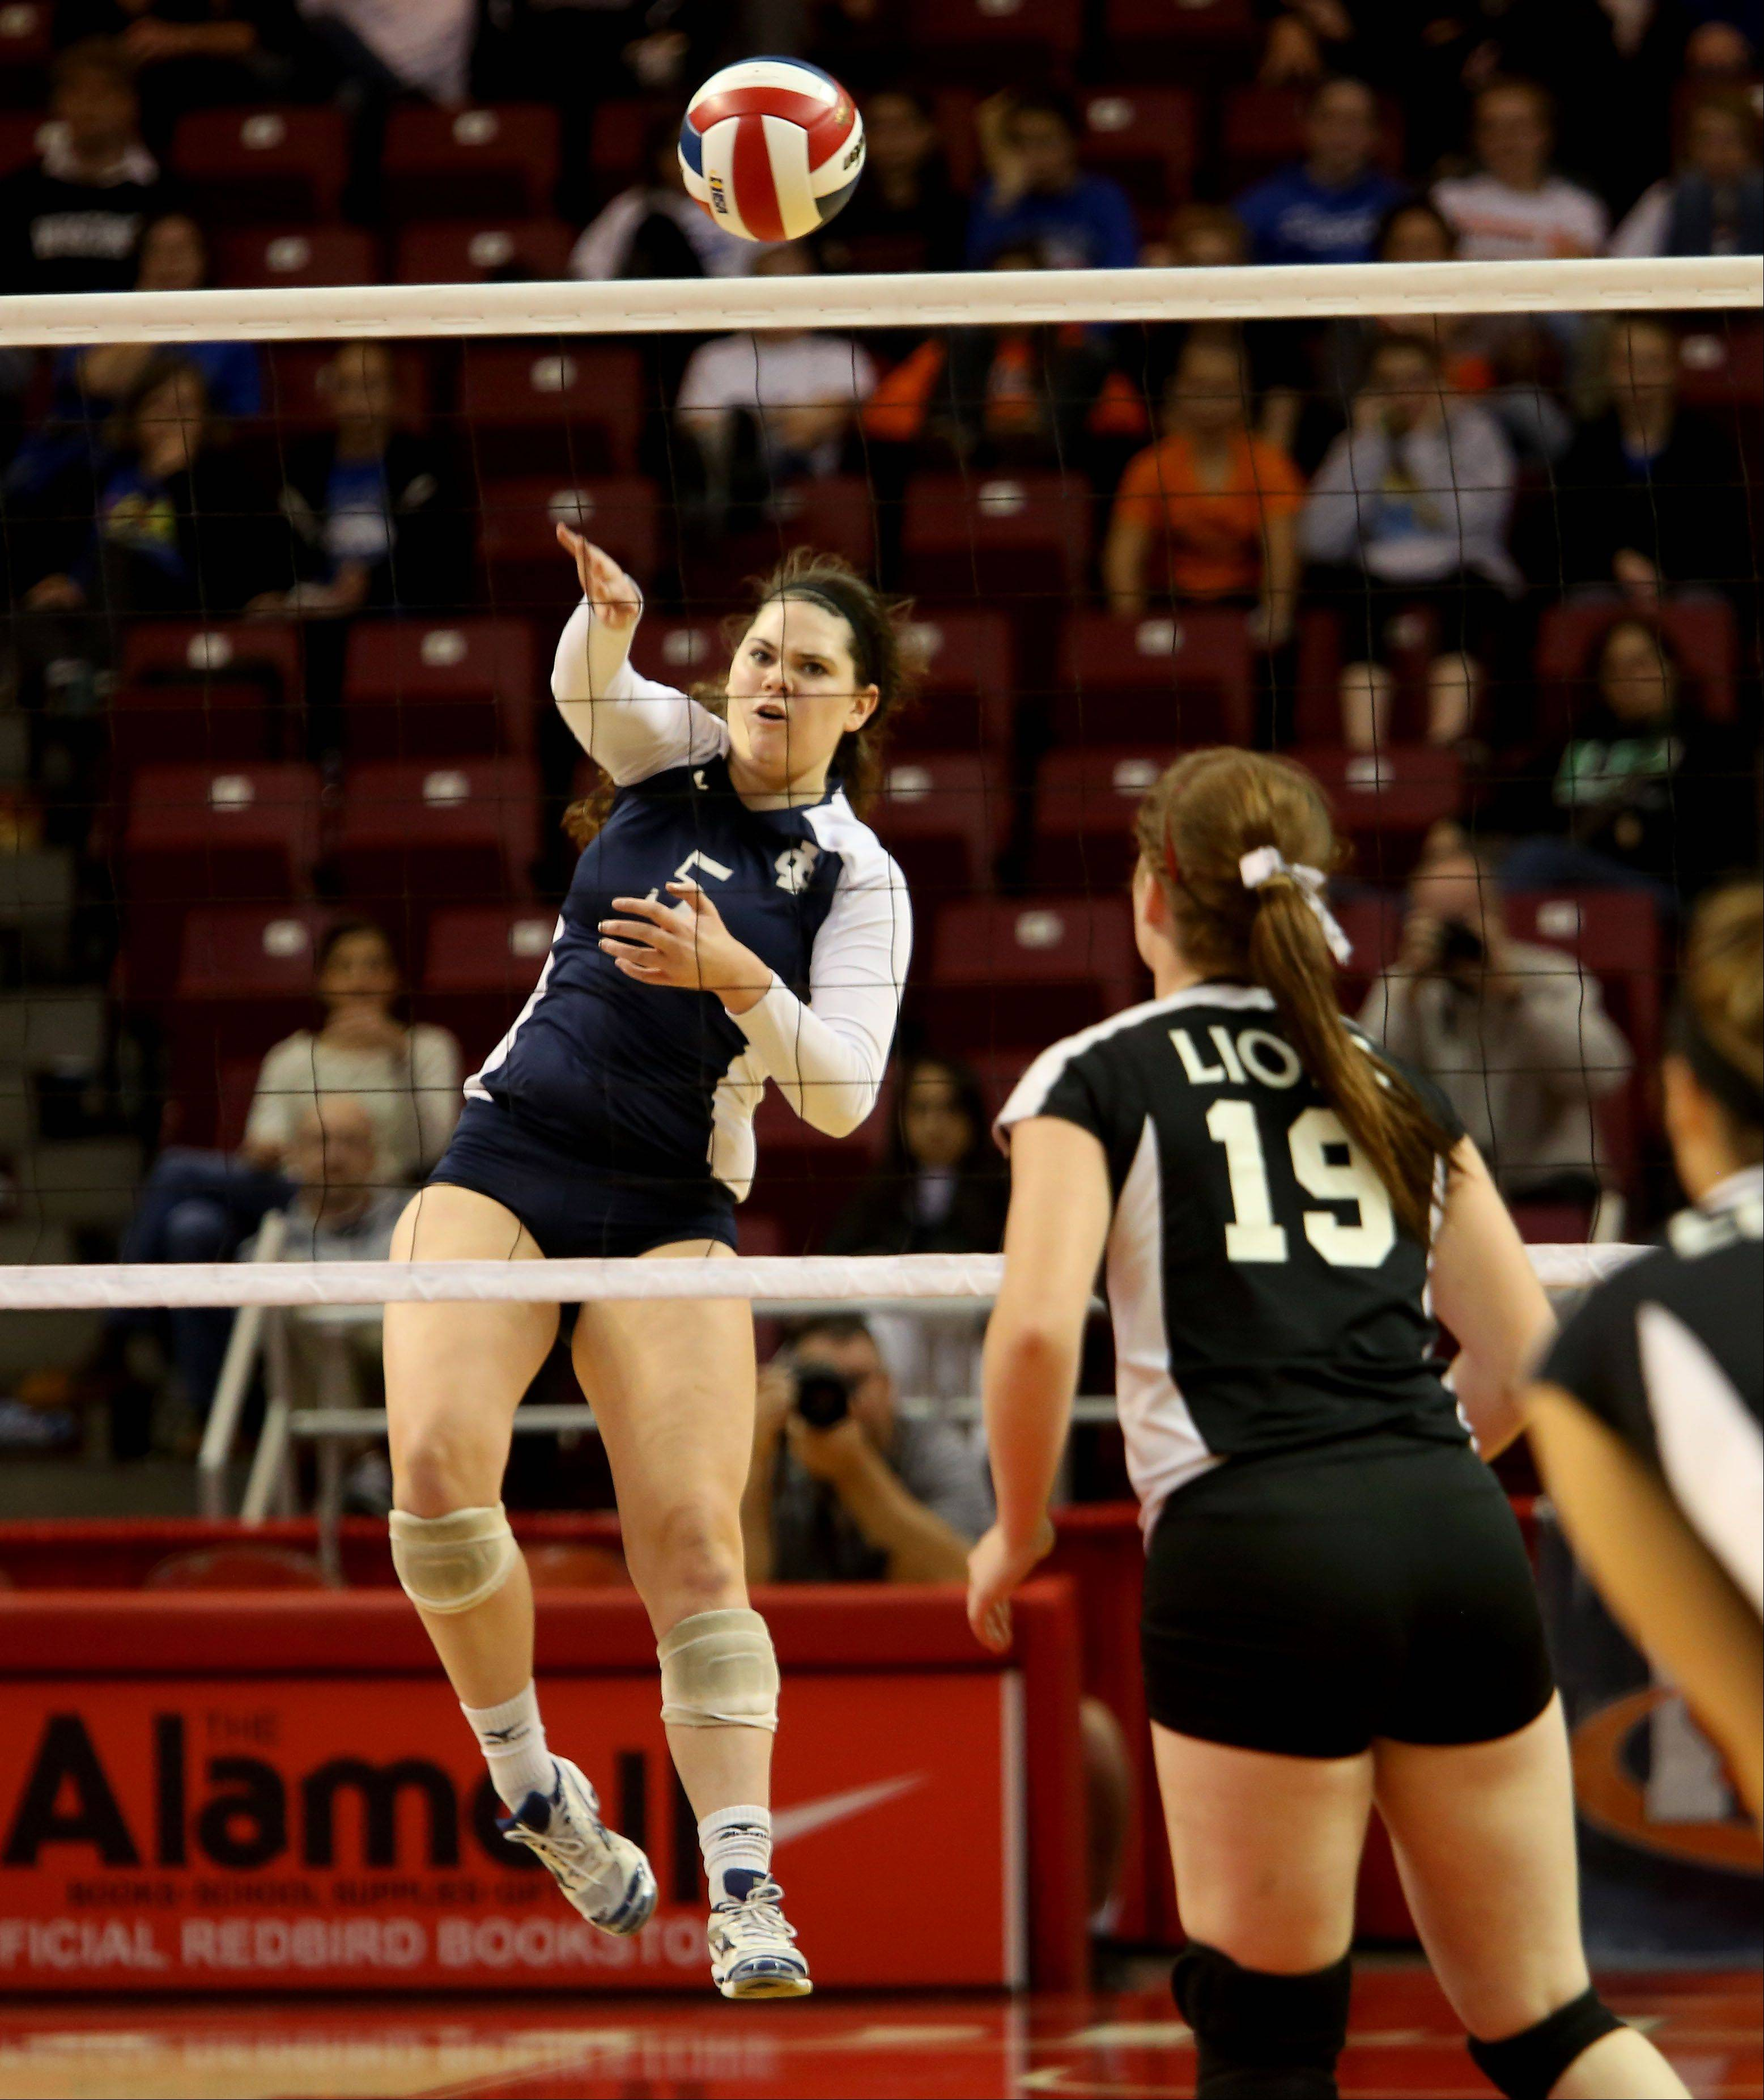 Rory Manion of IC Catholic gets the ball over to Edwards County in the Class 2A championship girls volleyball match on Saturday in Normal.